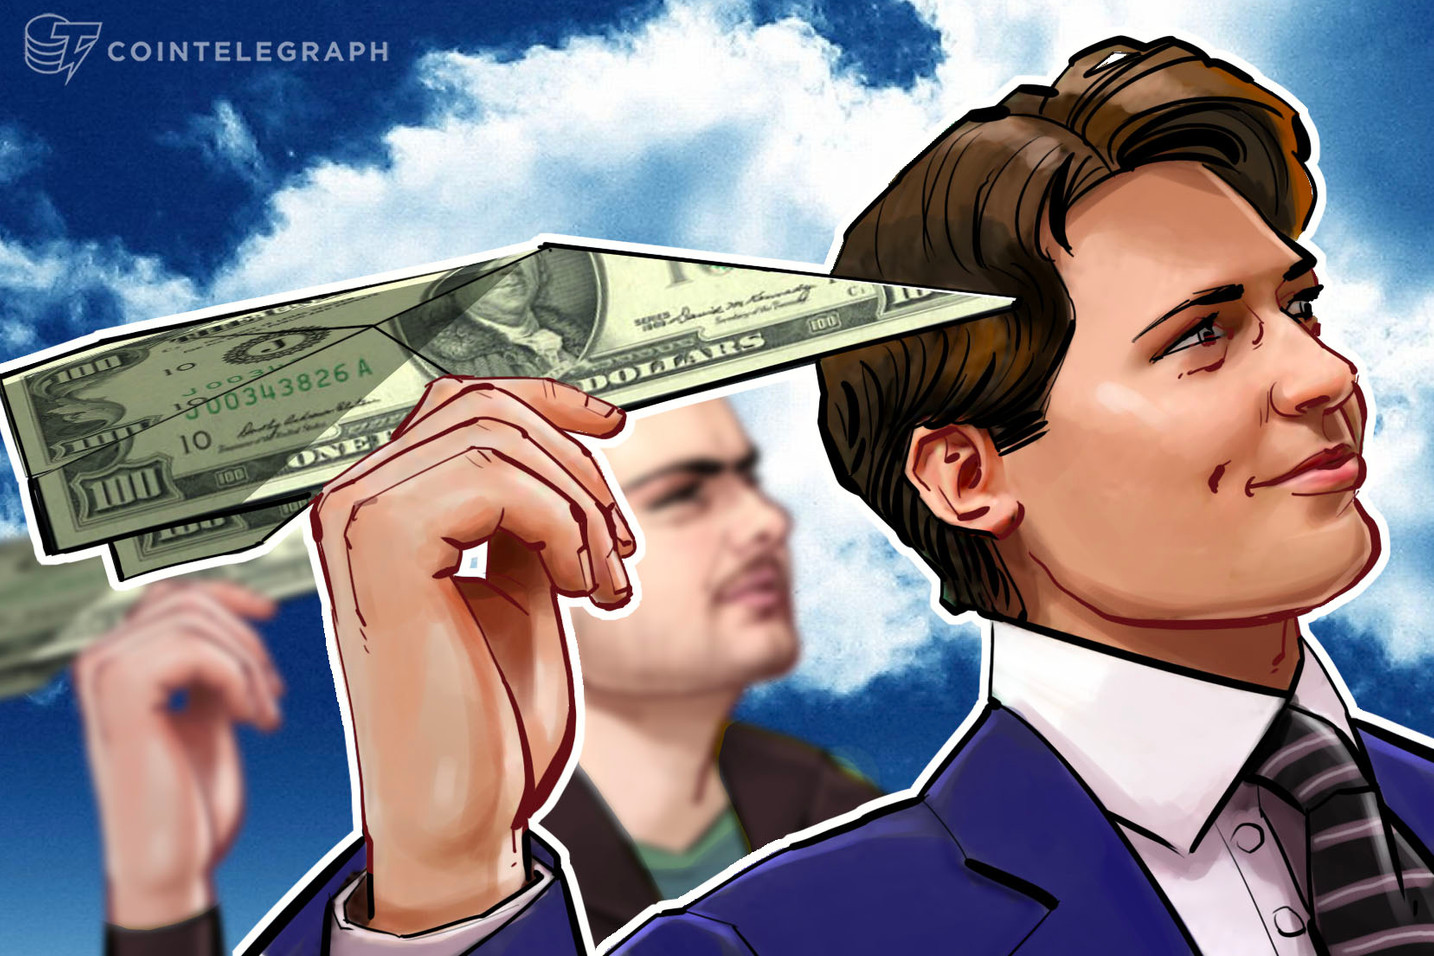 Telegram Attracts $850 Mln In Second Round Of ICO